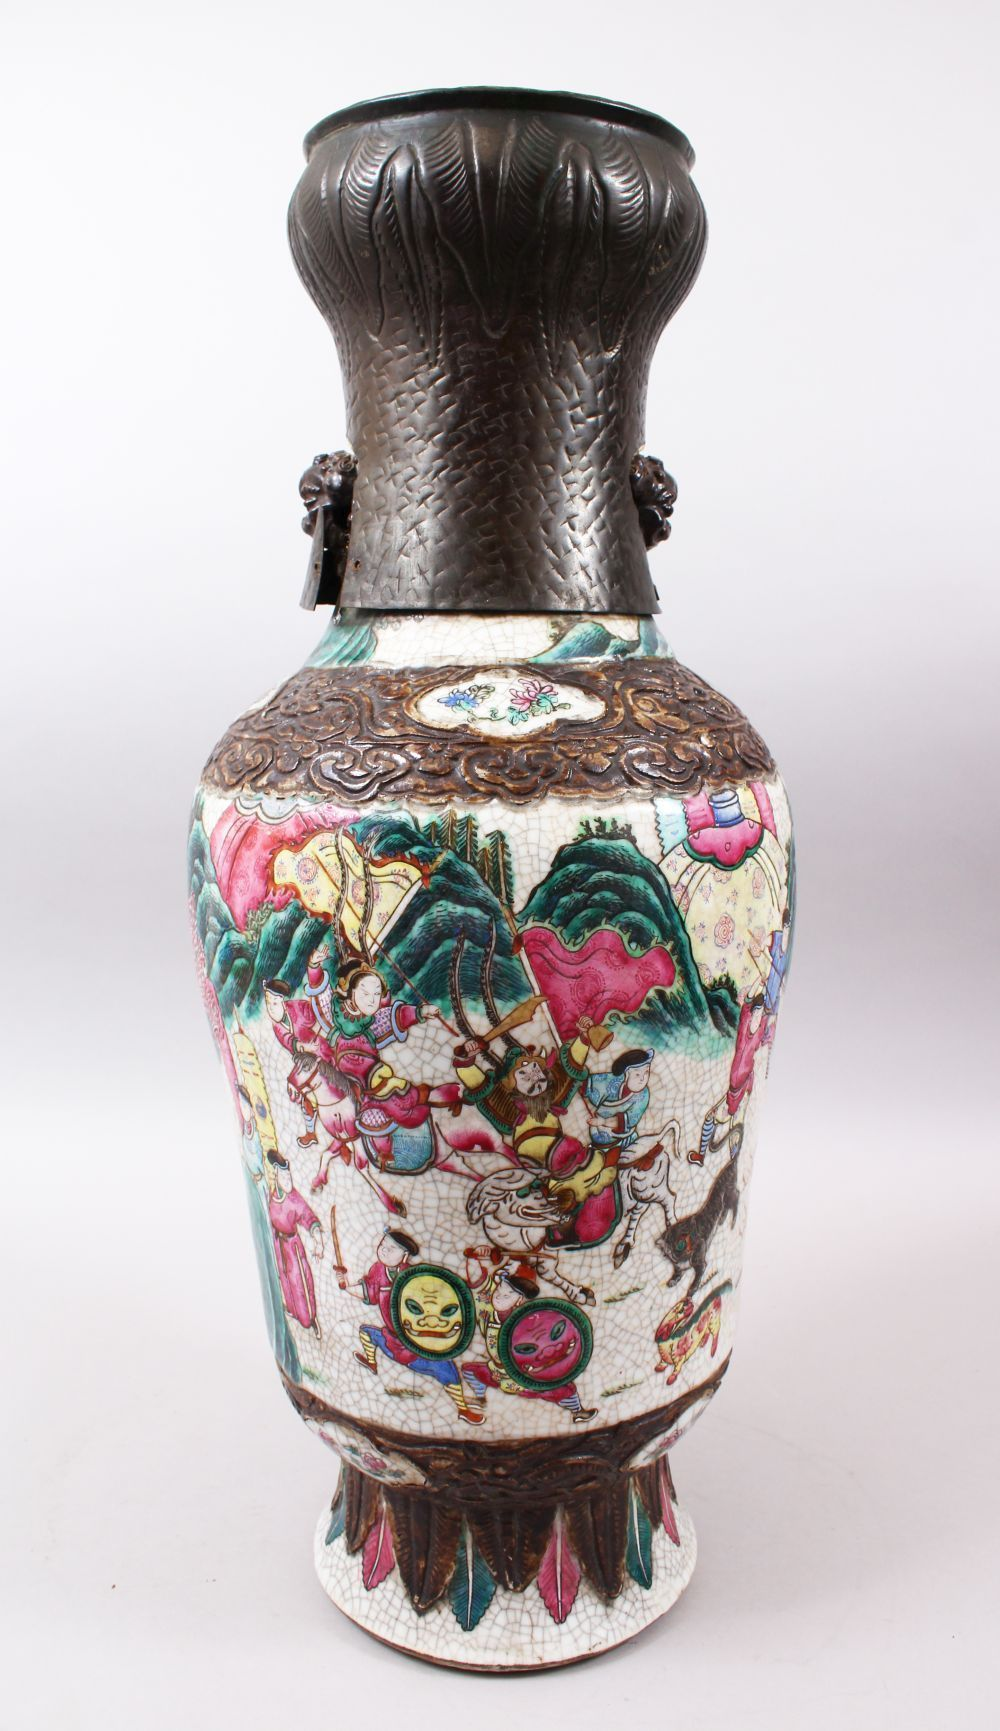 A 19TH CENTURY CHINESE FAMILLE ROSE CRACKLE GLAZED PORCELAIN VASE, painted with a battle scene,